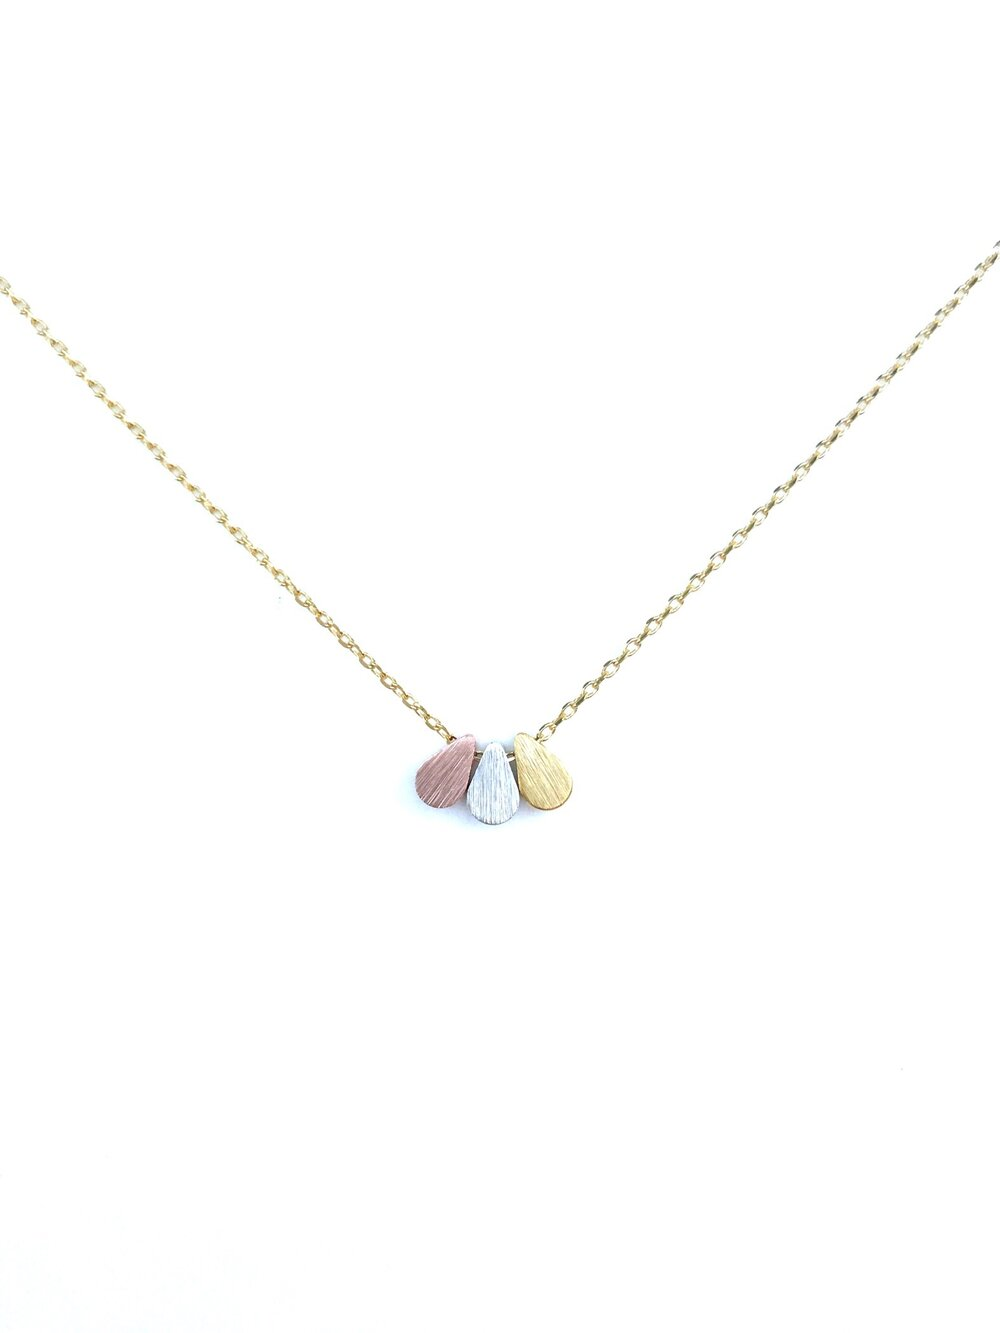 Triple Teardrop Dainty Necklace